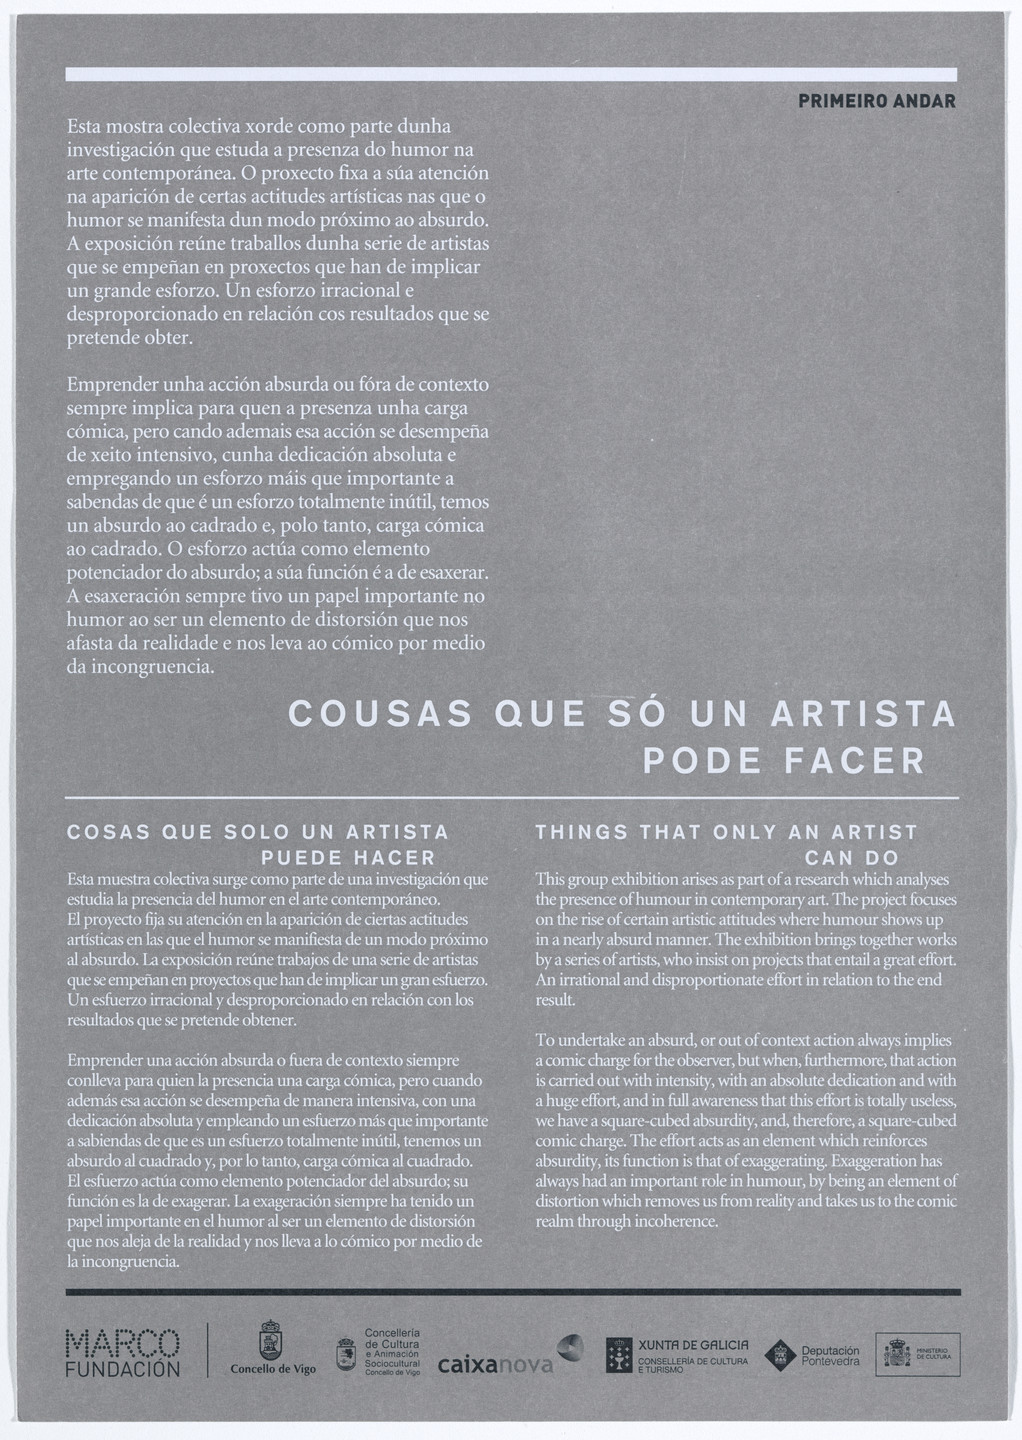 Aleksandra Mir. Flyer for Things That Only an Artist Can Do, MARCO Museo de Arte Contemporánea de Vigo, Spain, January 29–May 2, 2010. 2010